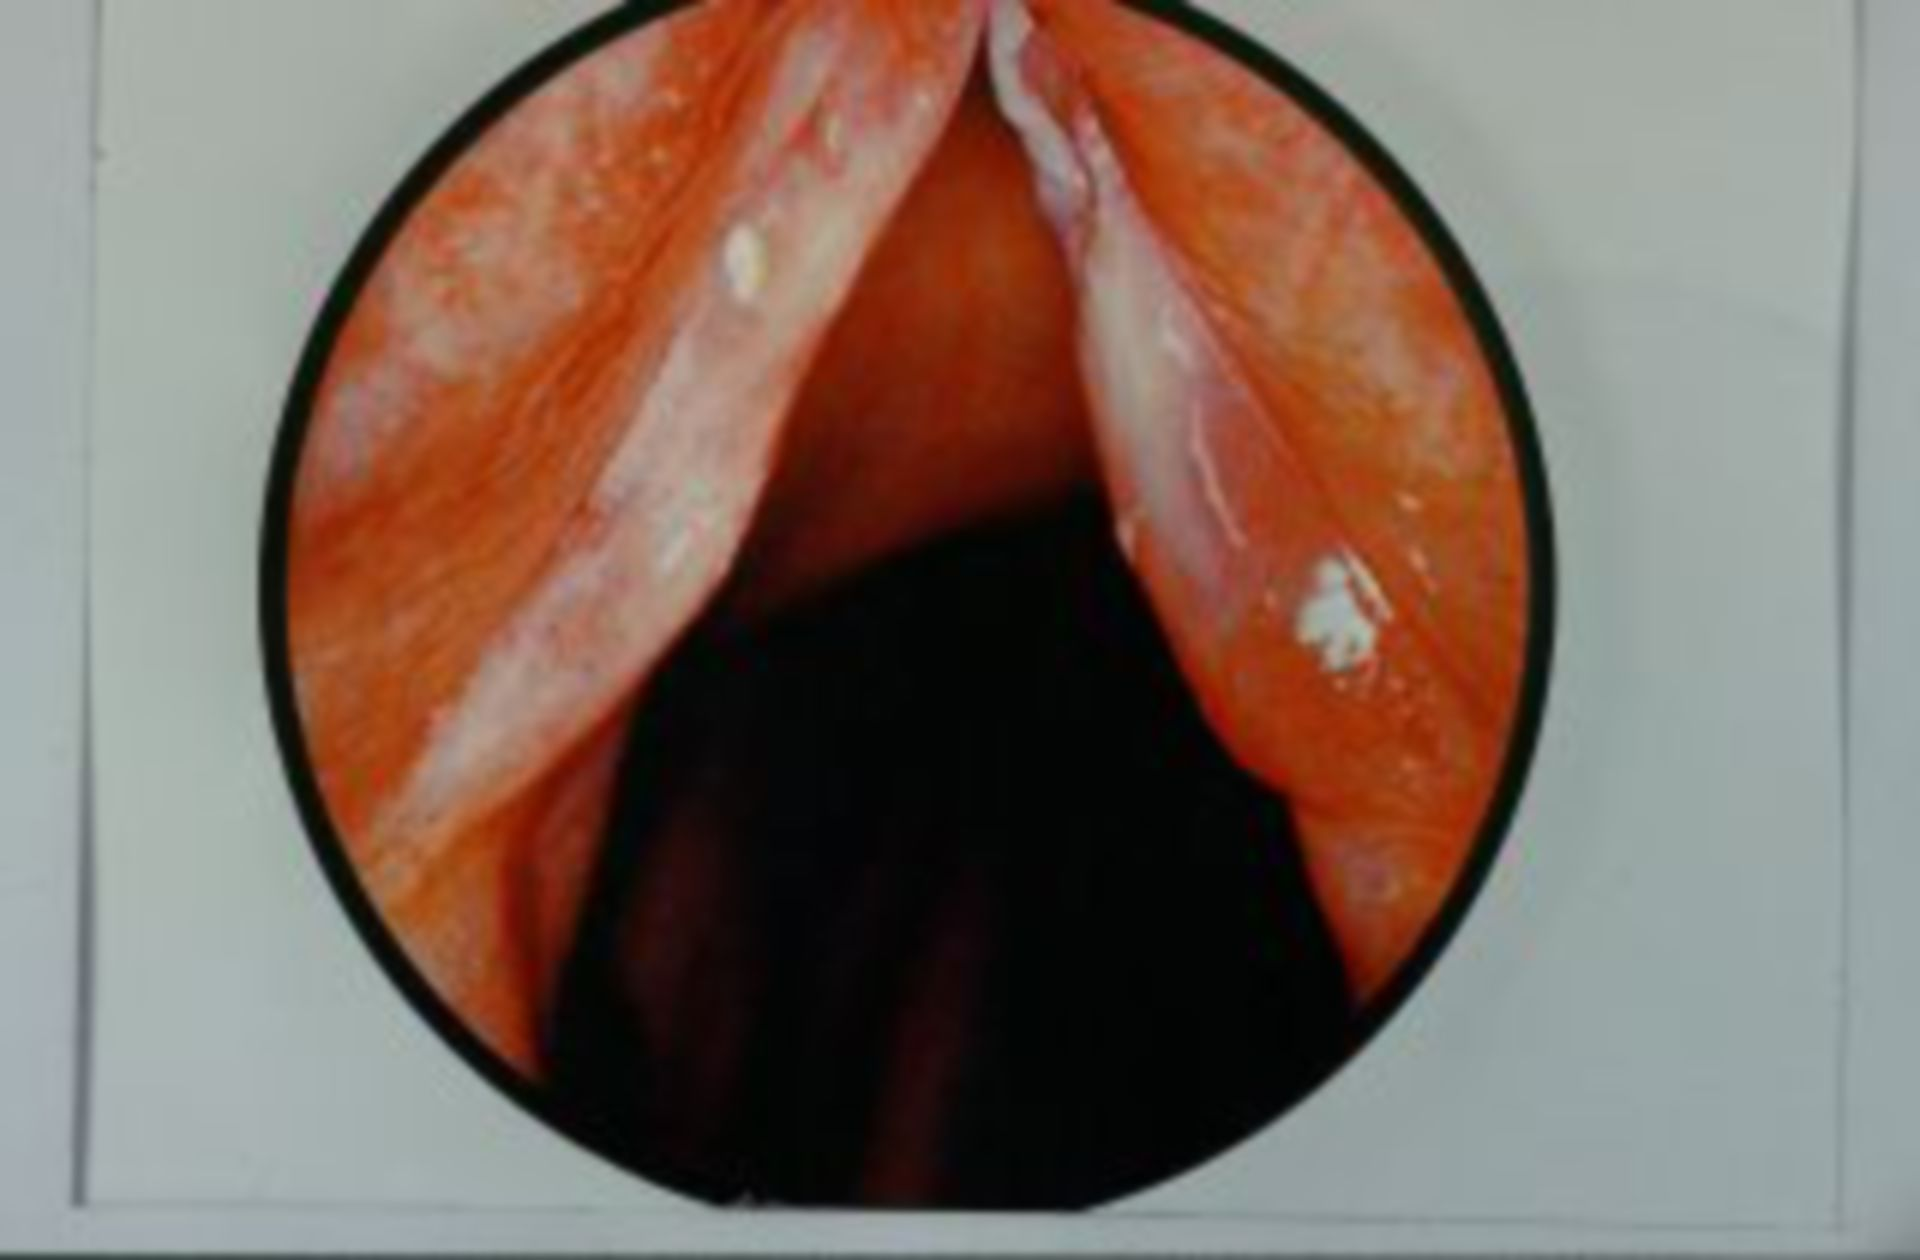 Chronic swelling of the vocal fold